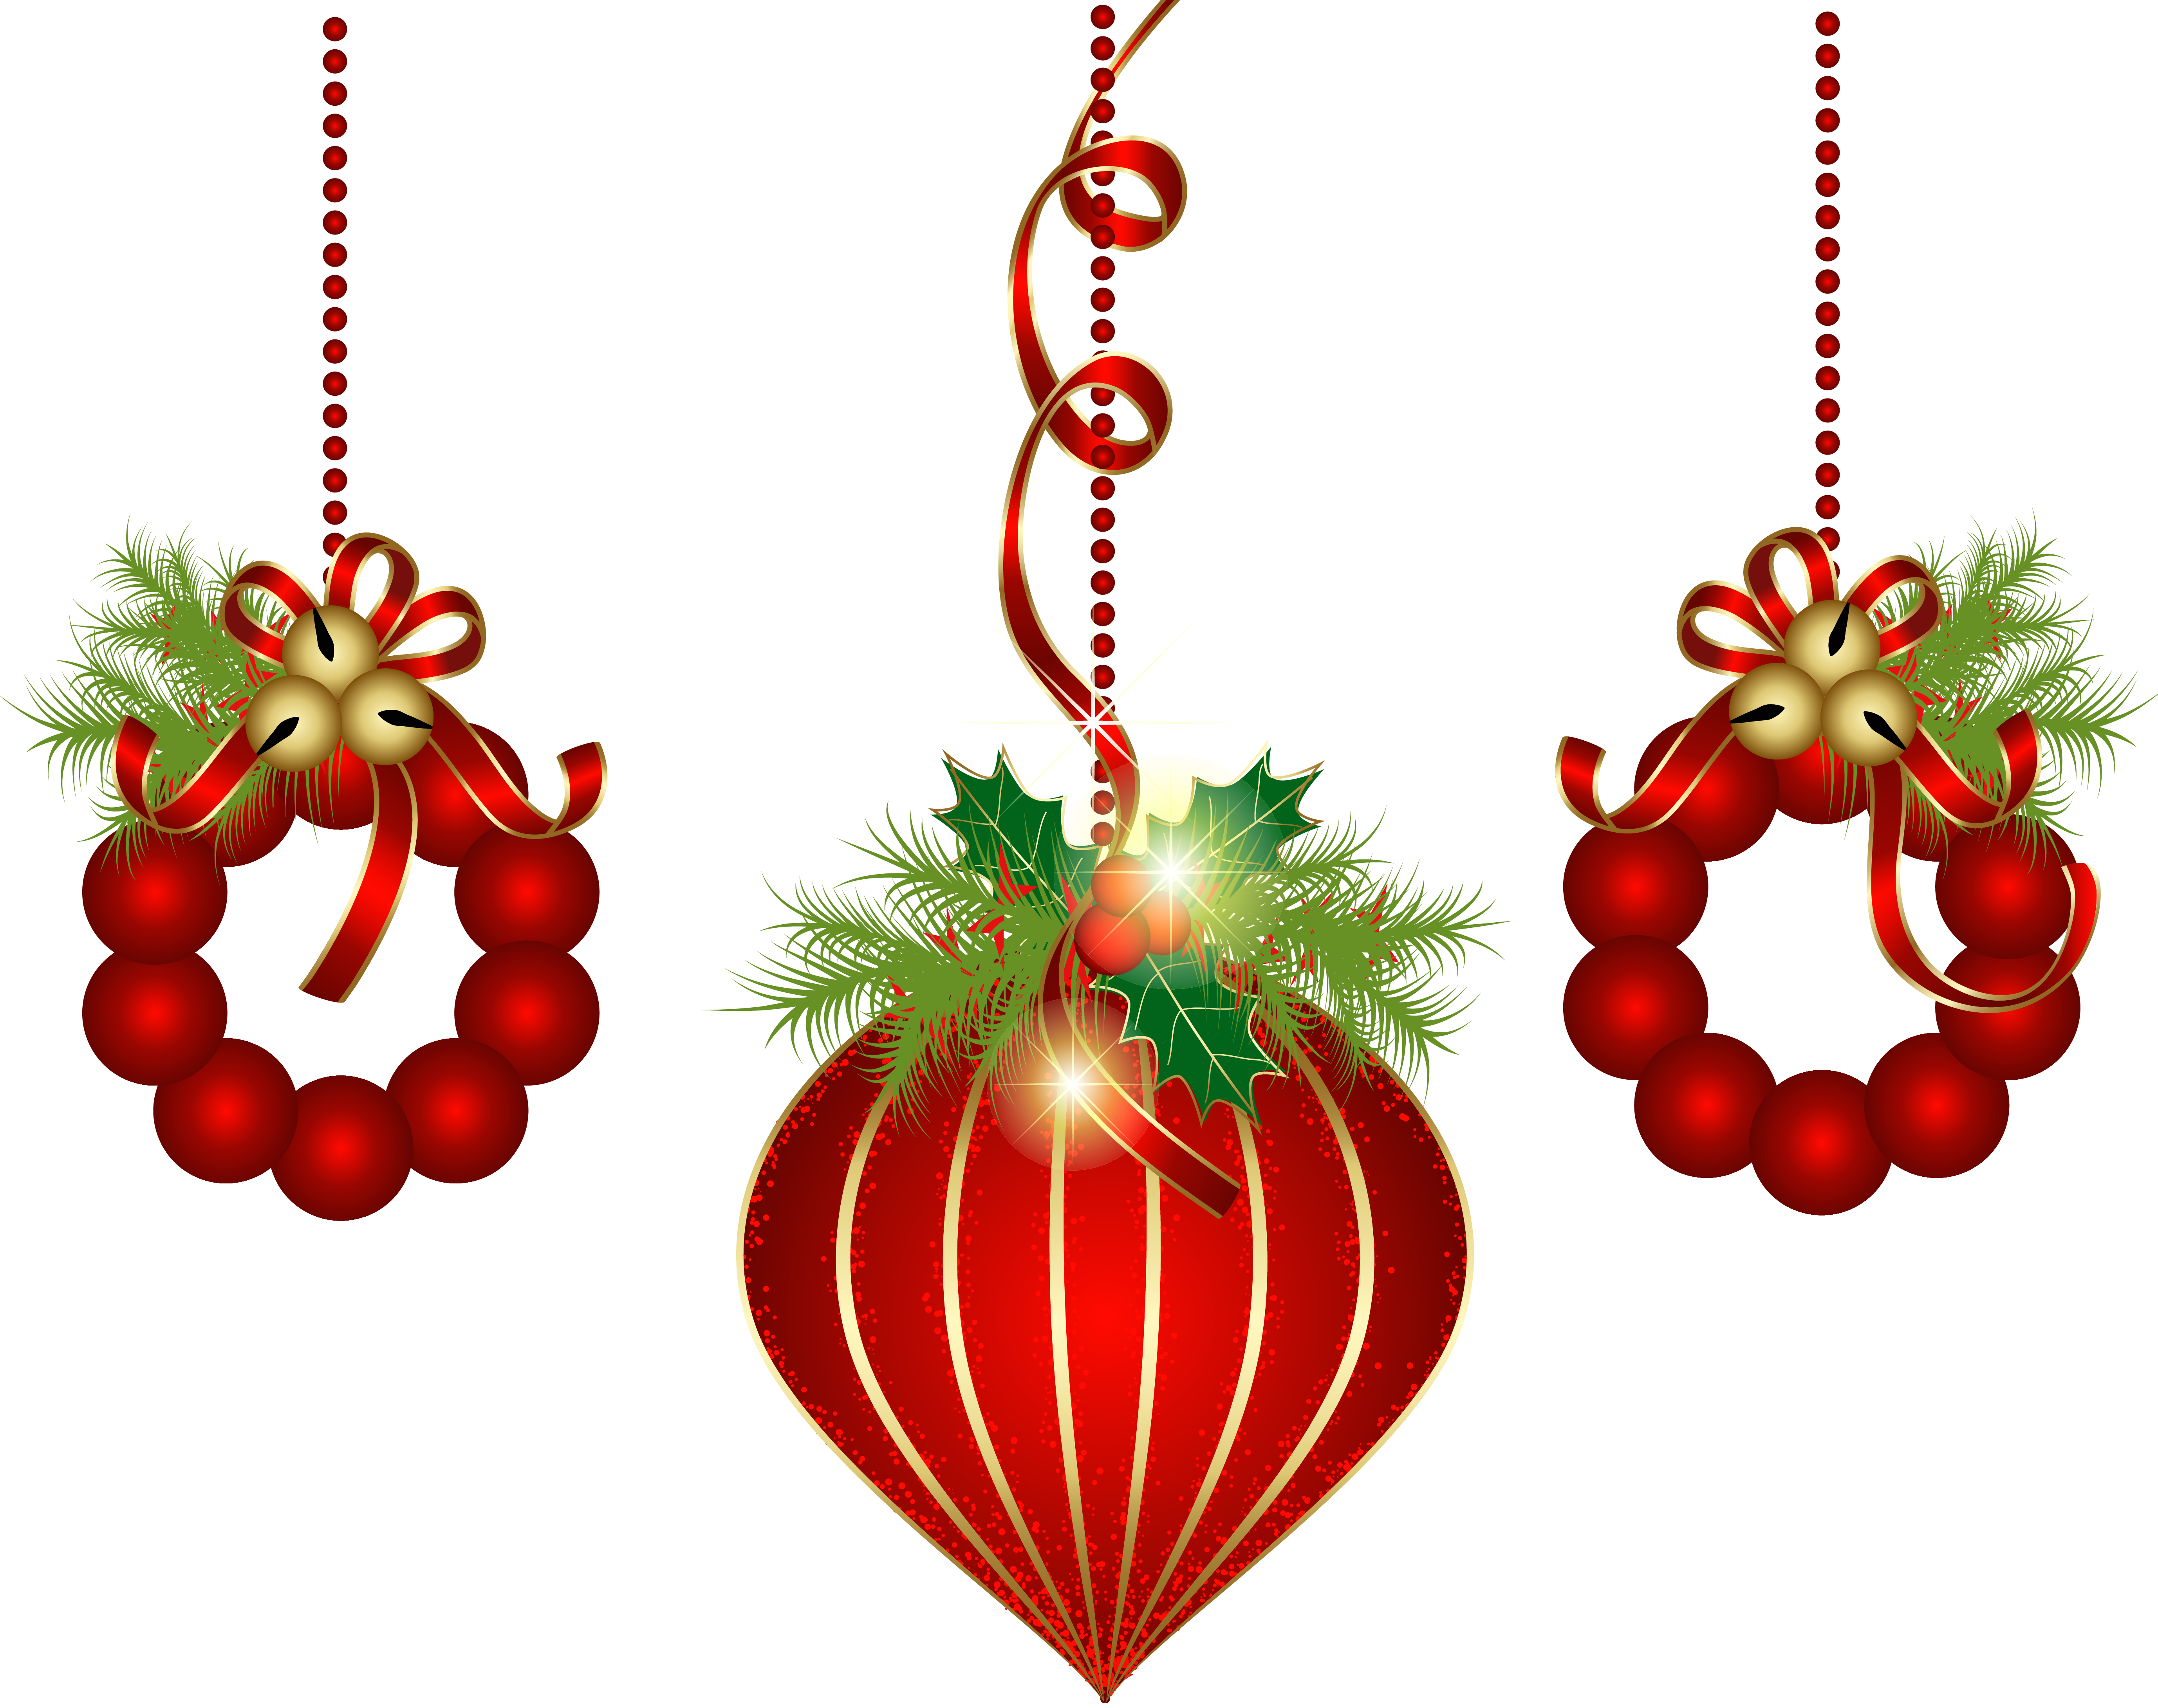 Silver Heart Ornament And Red Silver Ball Ornaments On A Table More Details Can Be Fou Red Christmas Ornaments Christmas Ornaments Christmas Decorations